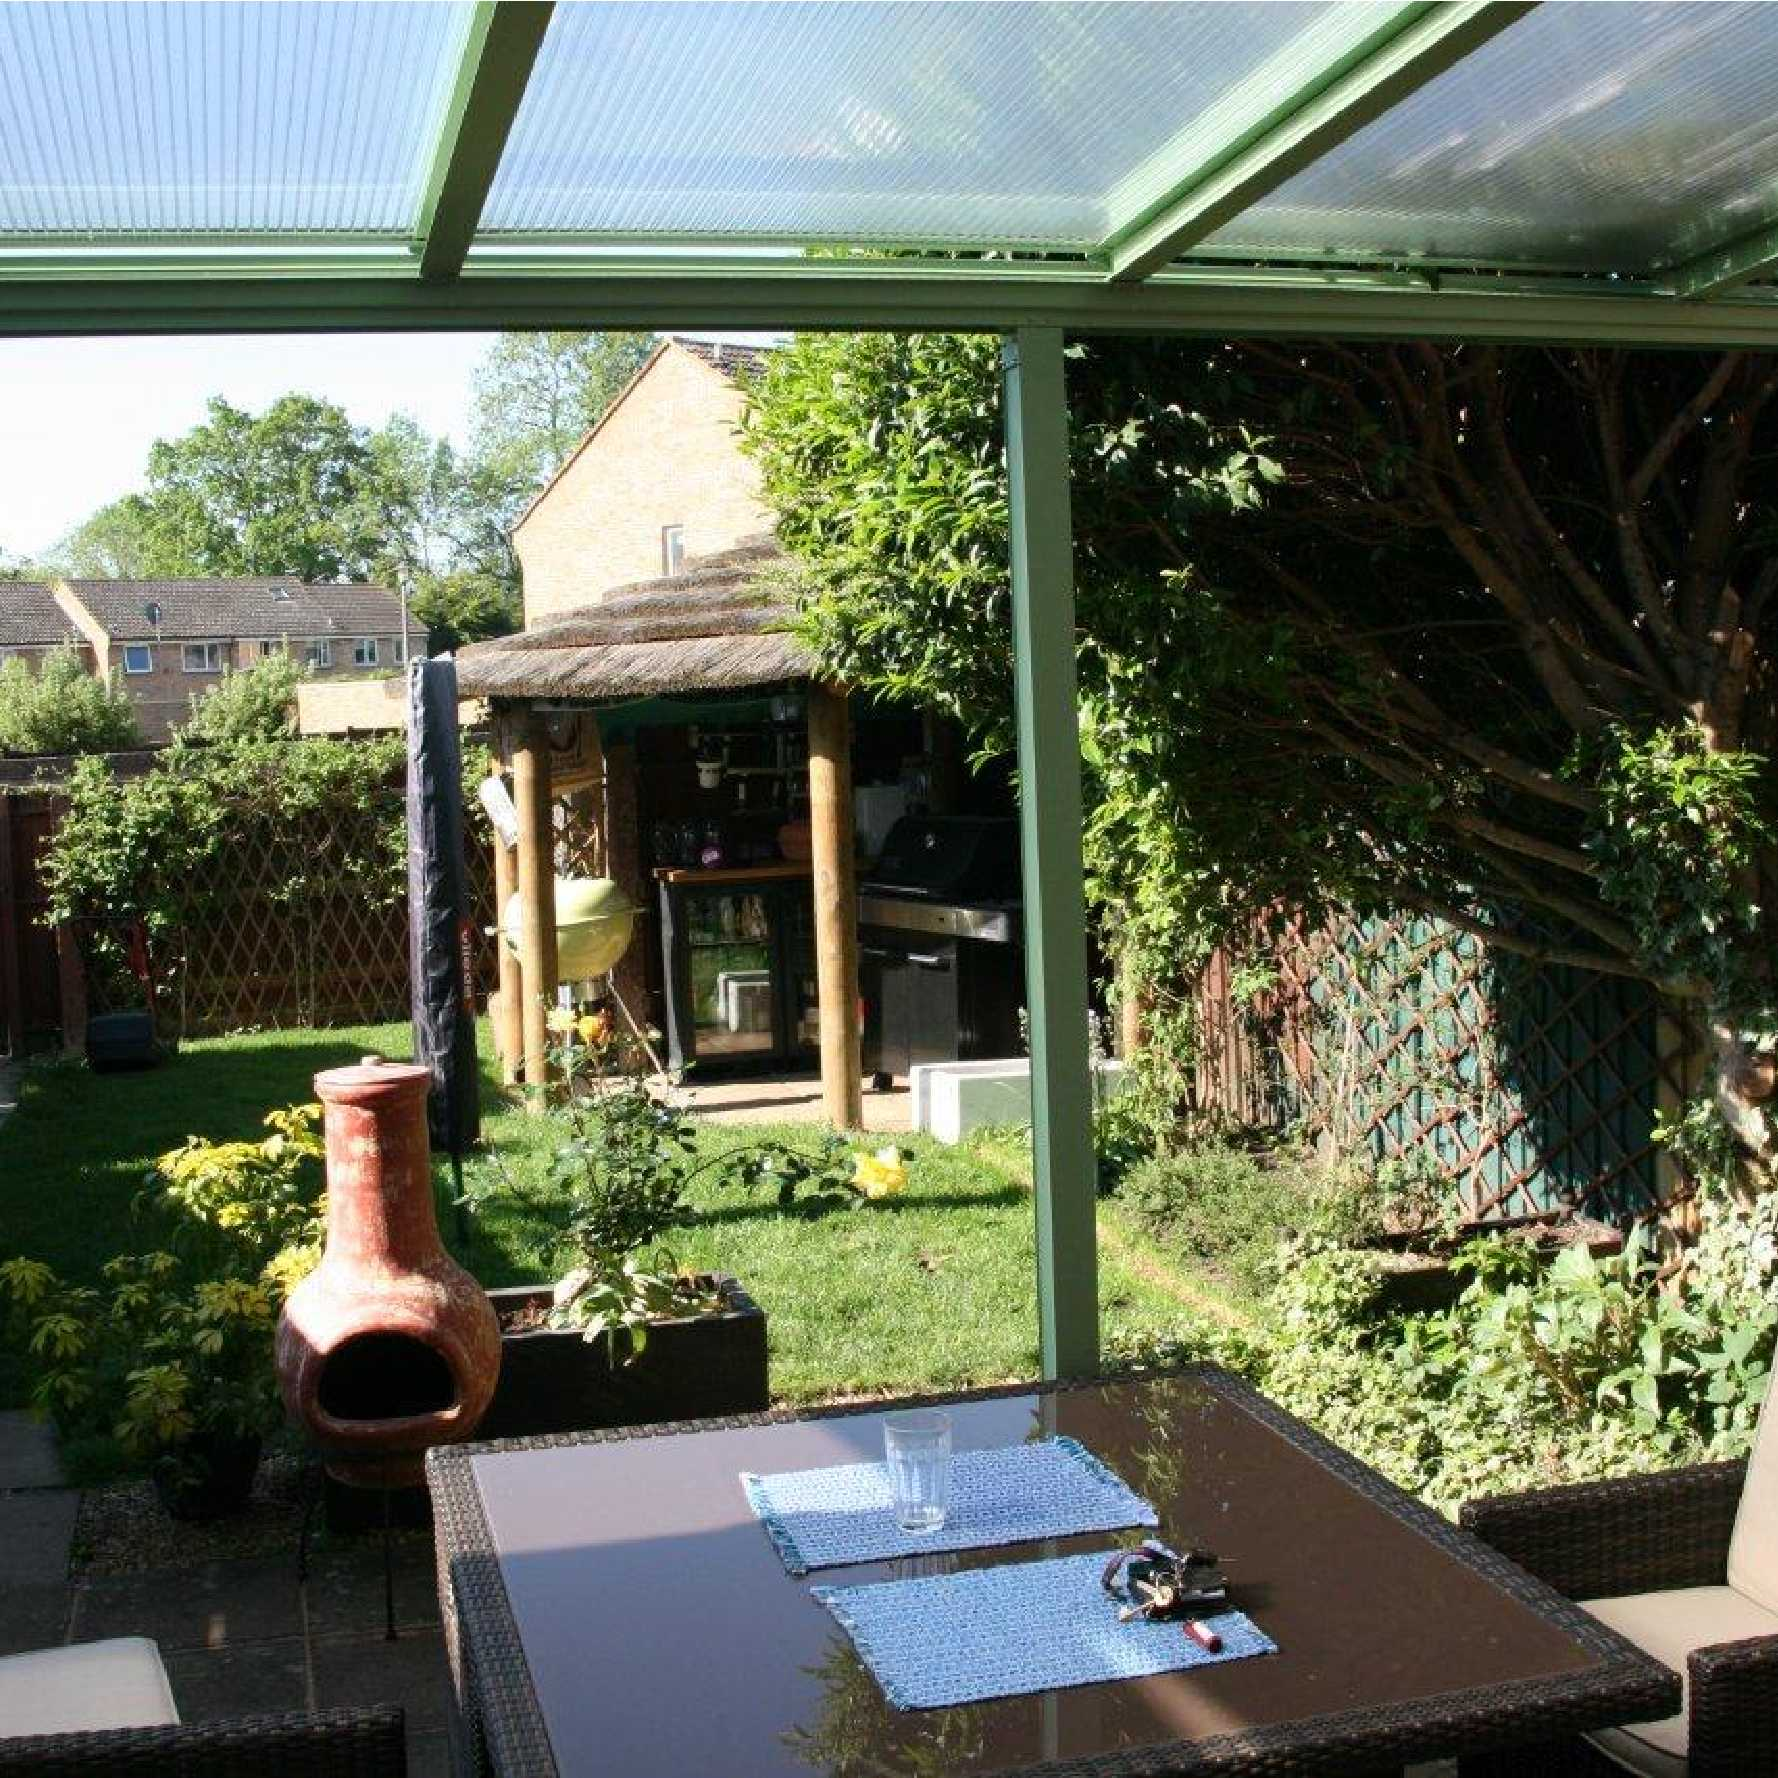 Affordable Omega Smart White Lean-To Canopy with 16mm Polycarbonate Glazing - 2.1m (W) x 2.5m (P), (2) Supporting Posts